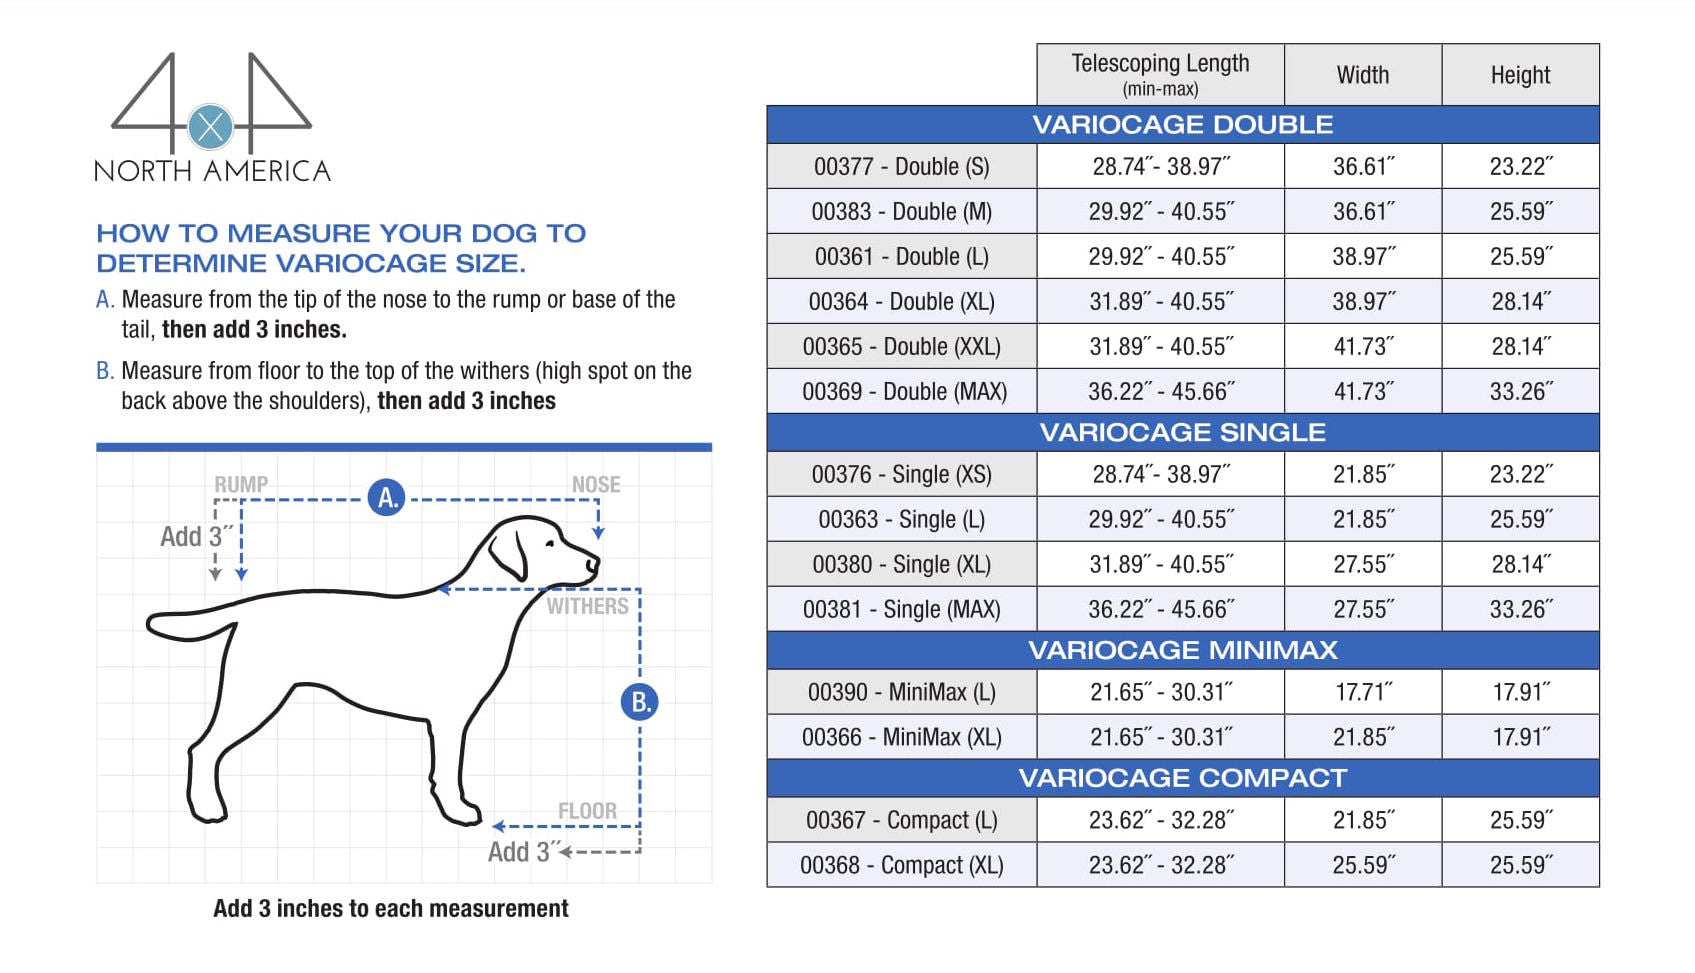 Variocage Dog Measurement Instructions